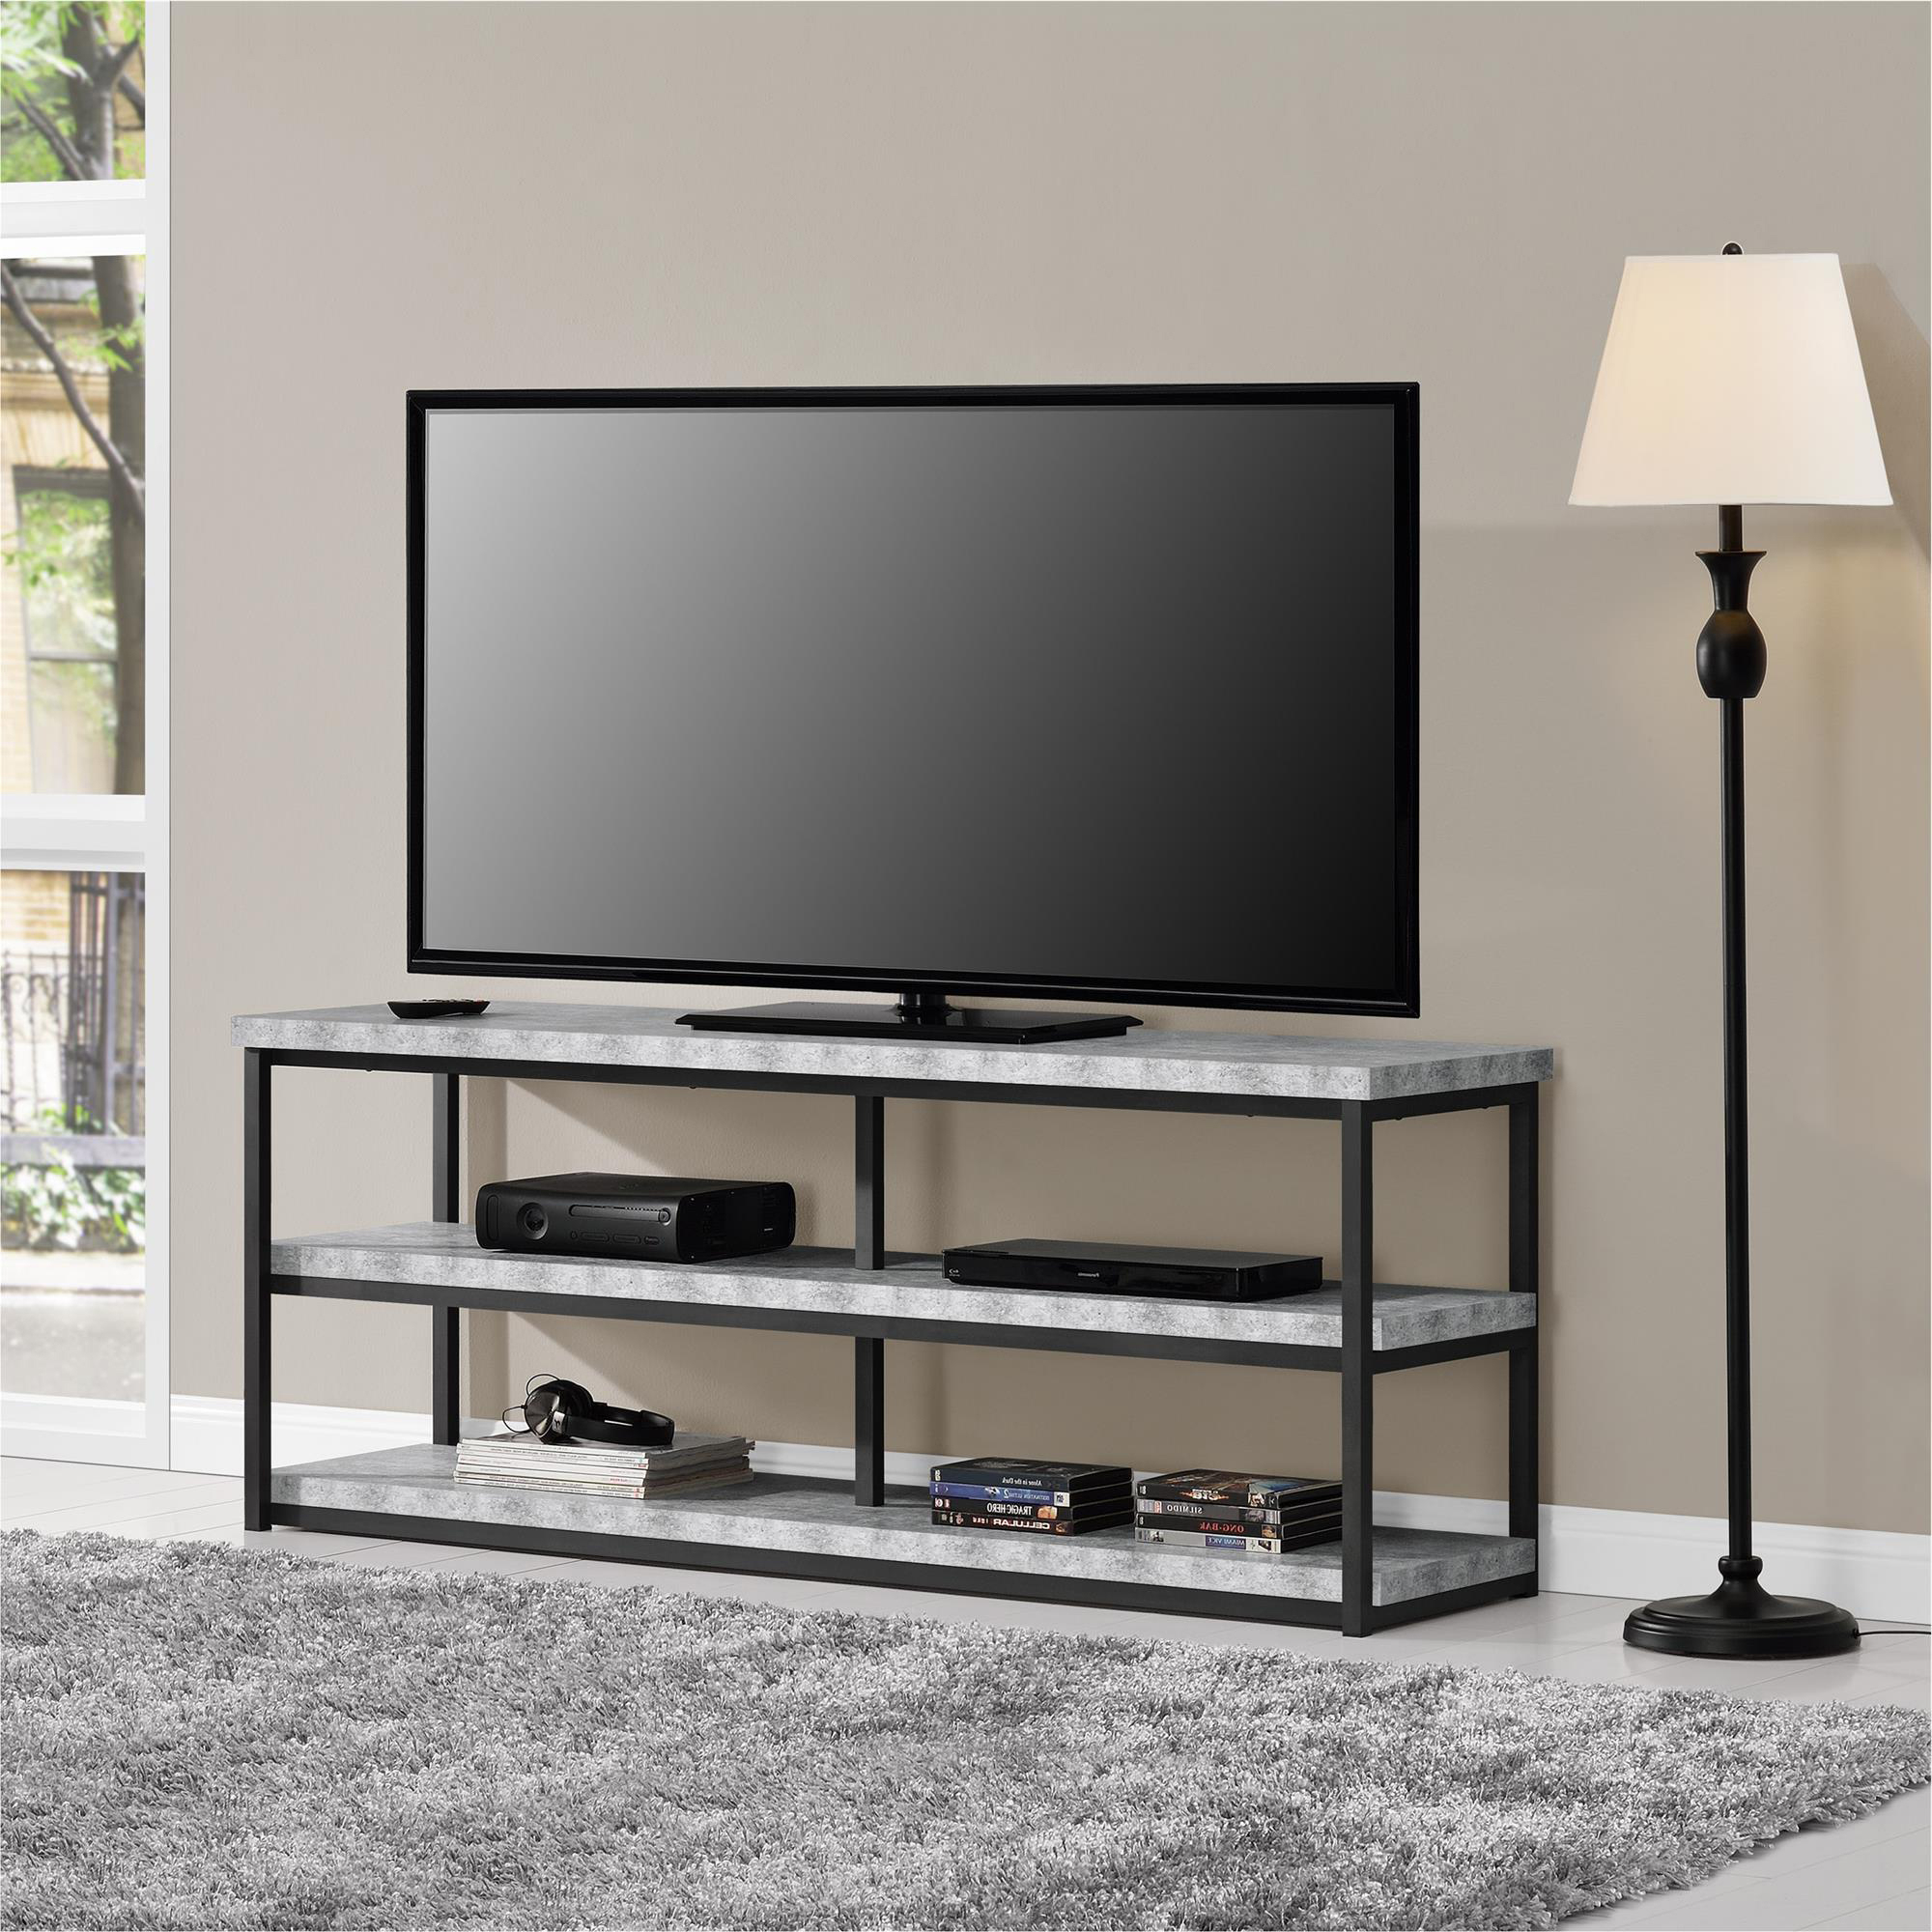 """Ameriwood Home Ashlar Tv Stand For Tvs Up To 65"""", Multiple With Regard To Mainstays Tv Stands For Tvs With Multiple Colors (View 1 of 20)"""